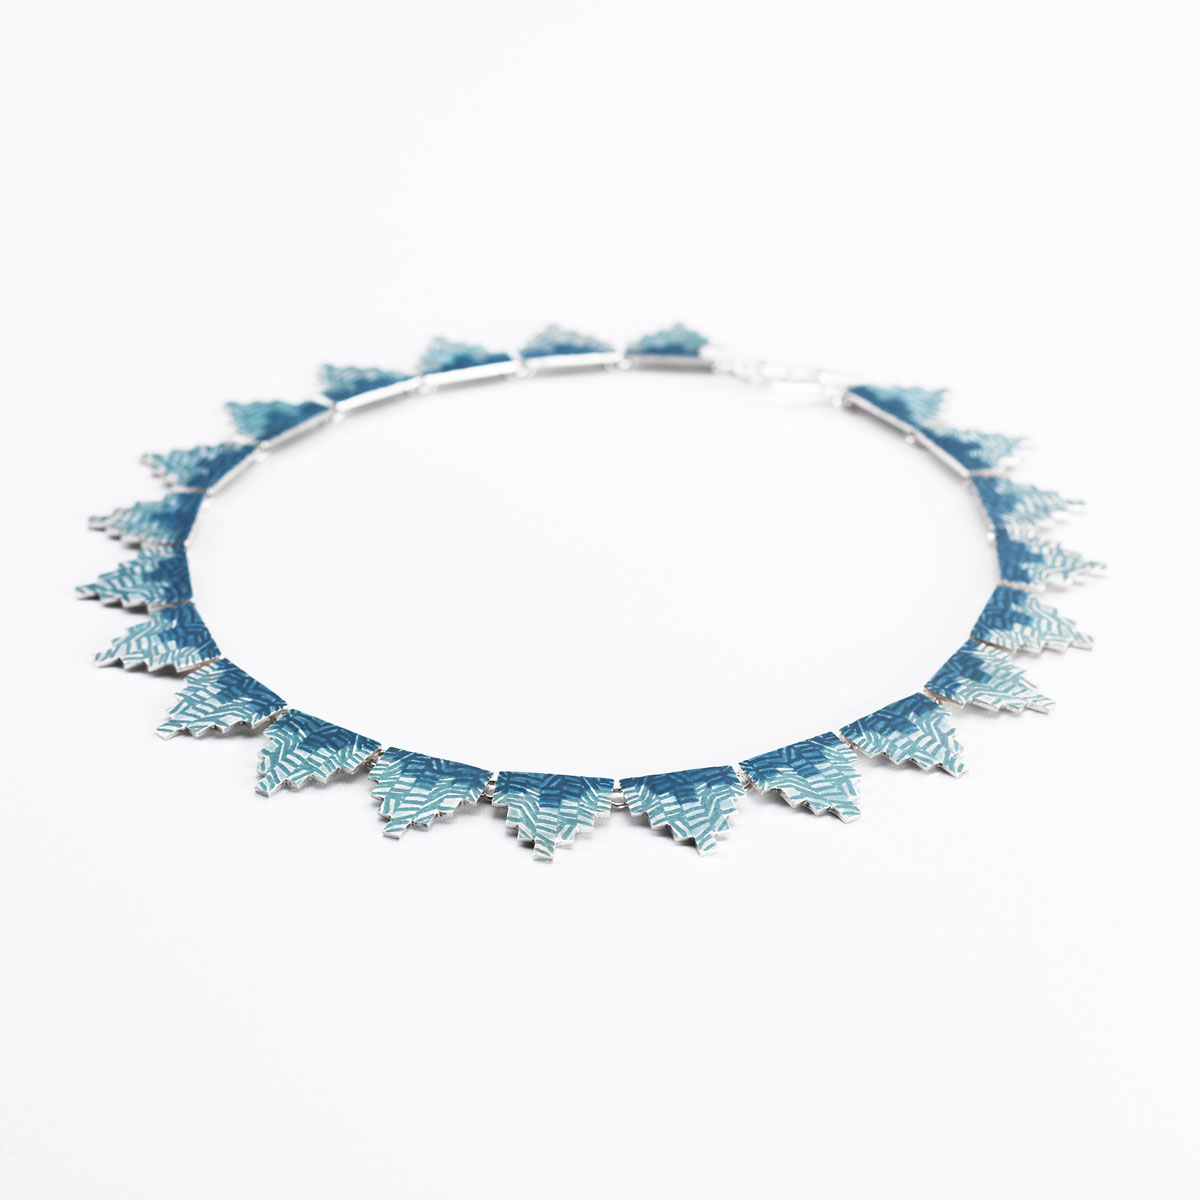 'Weave' Two Tone Necklace